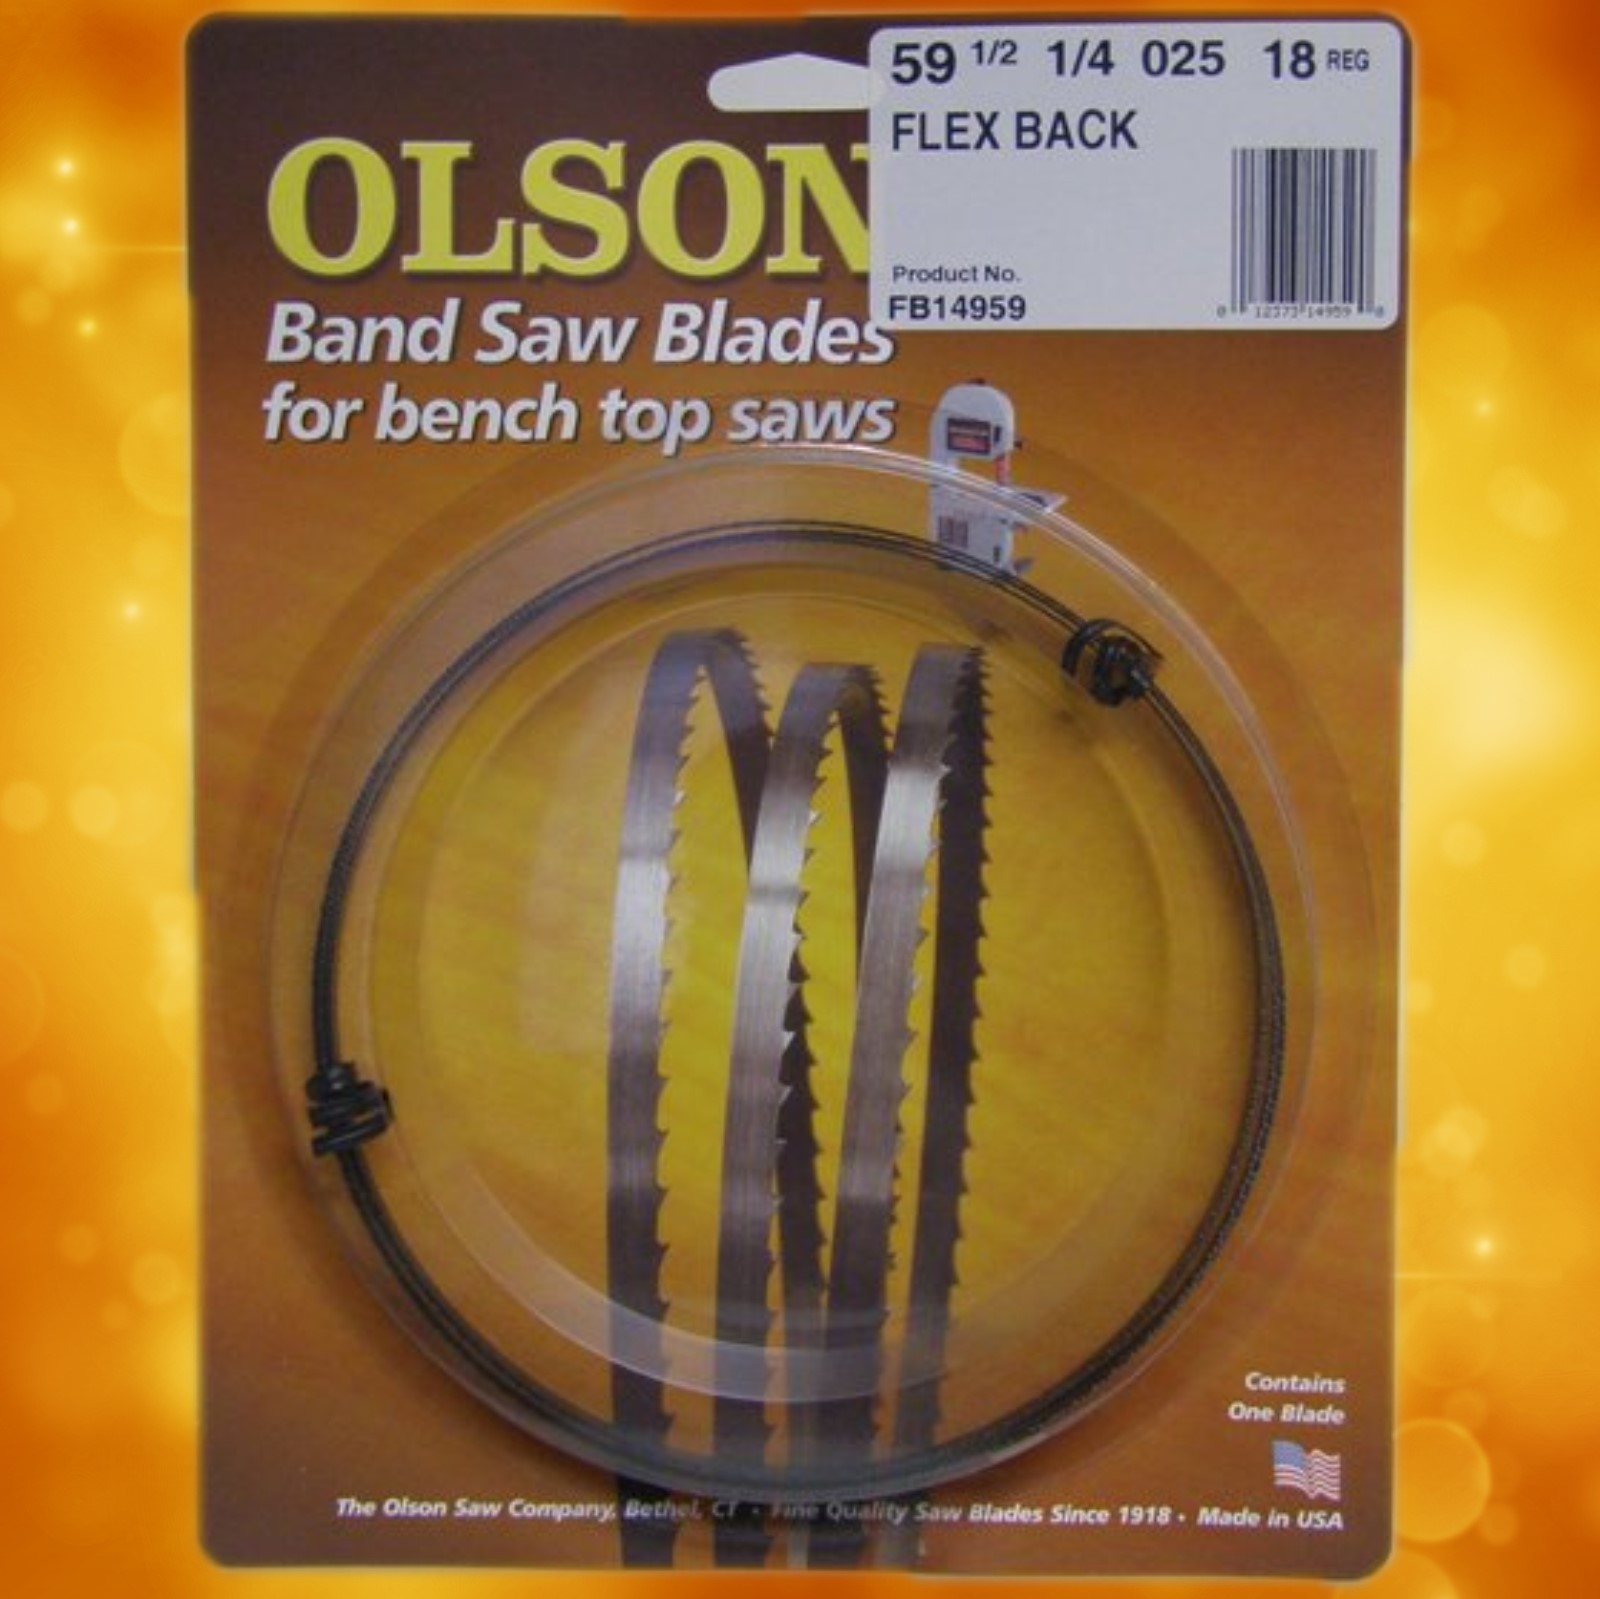 "Olson Band Saw Blade FB2502518R59.5 Olson Flex Back 59-1/2"" x 1/4"" x .025"" 18 TPI Style Regular FB2502518R59.5"